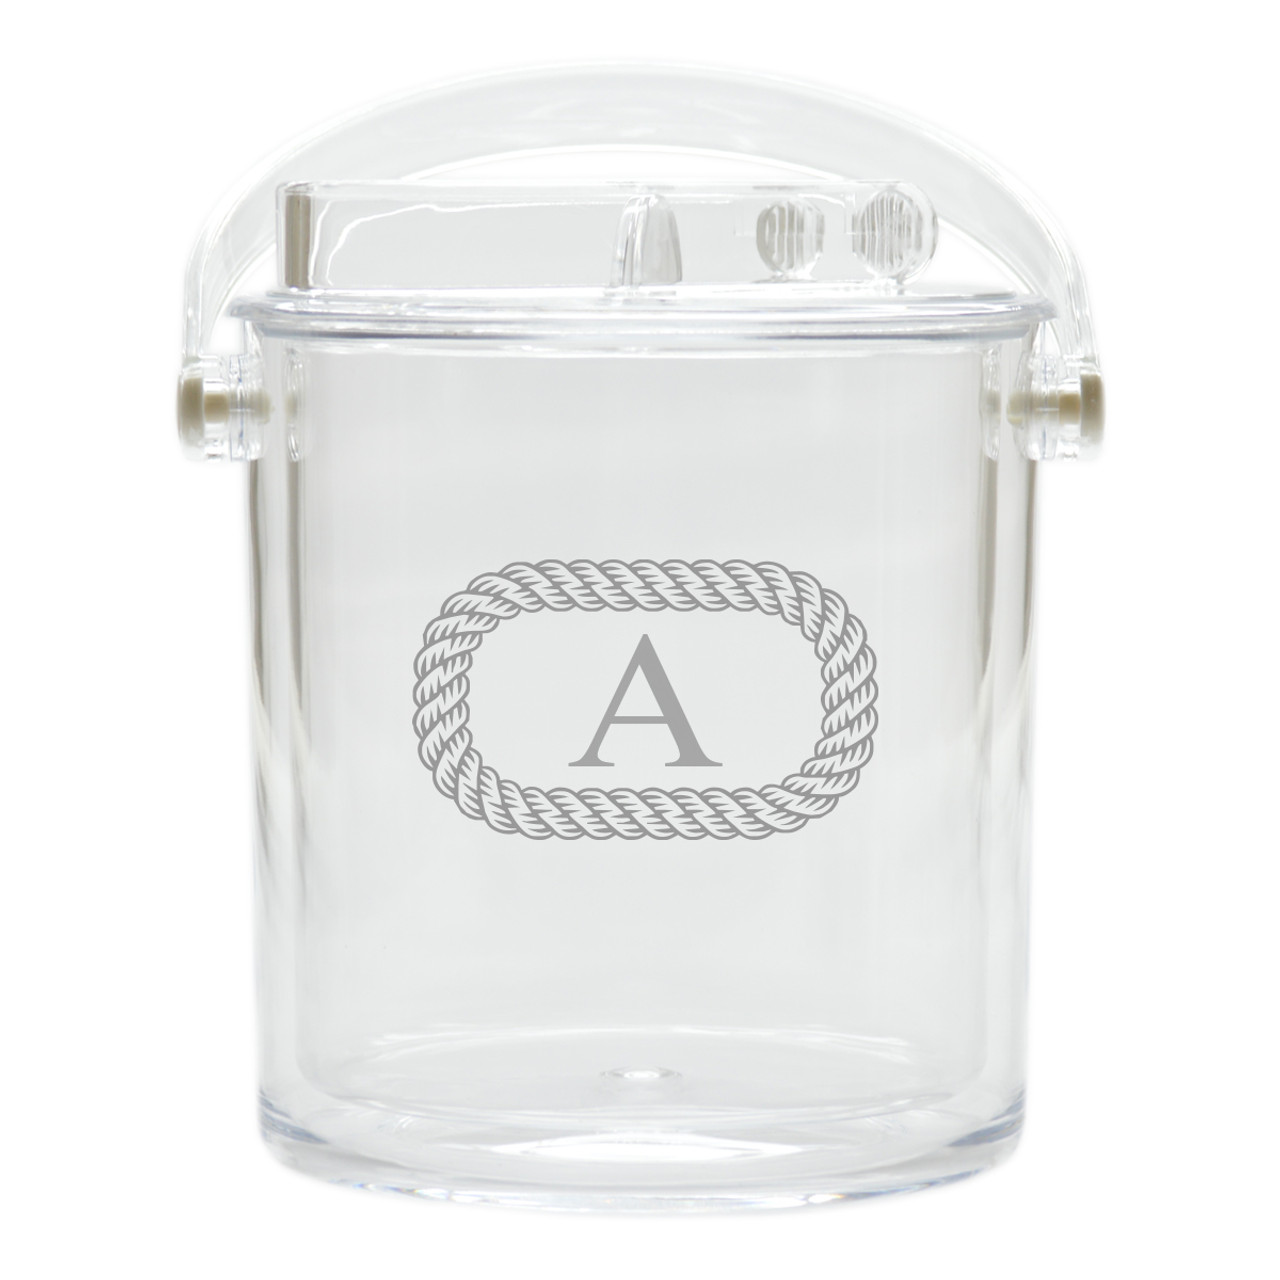 Personalized Insulated Ice Bucket with Tongs Oval Rope